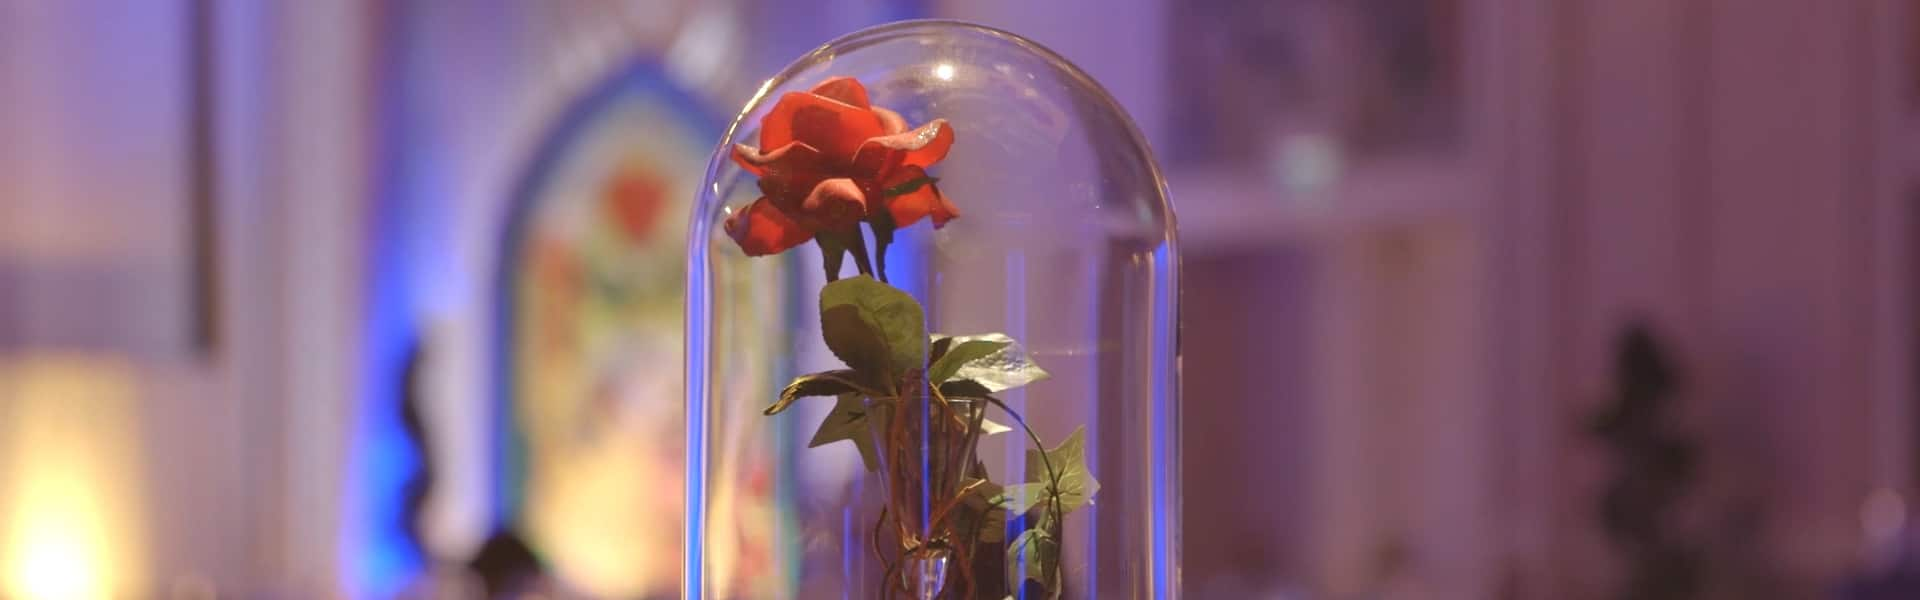 The Enchanted Rose in a bell shaped jar which appears in the movie Beauty and the Beast